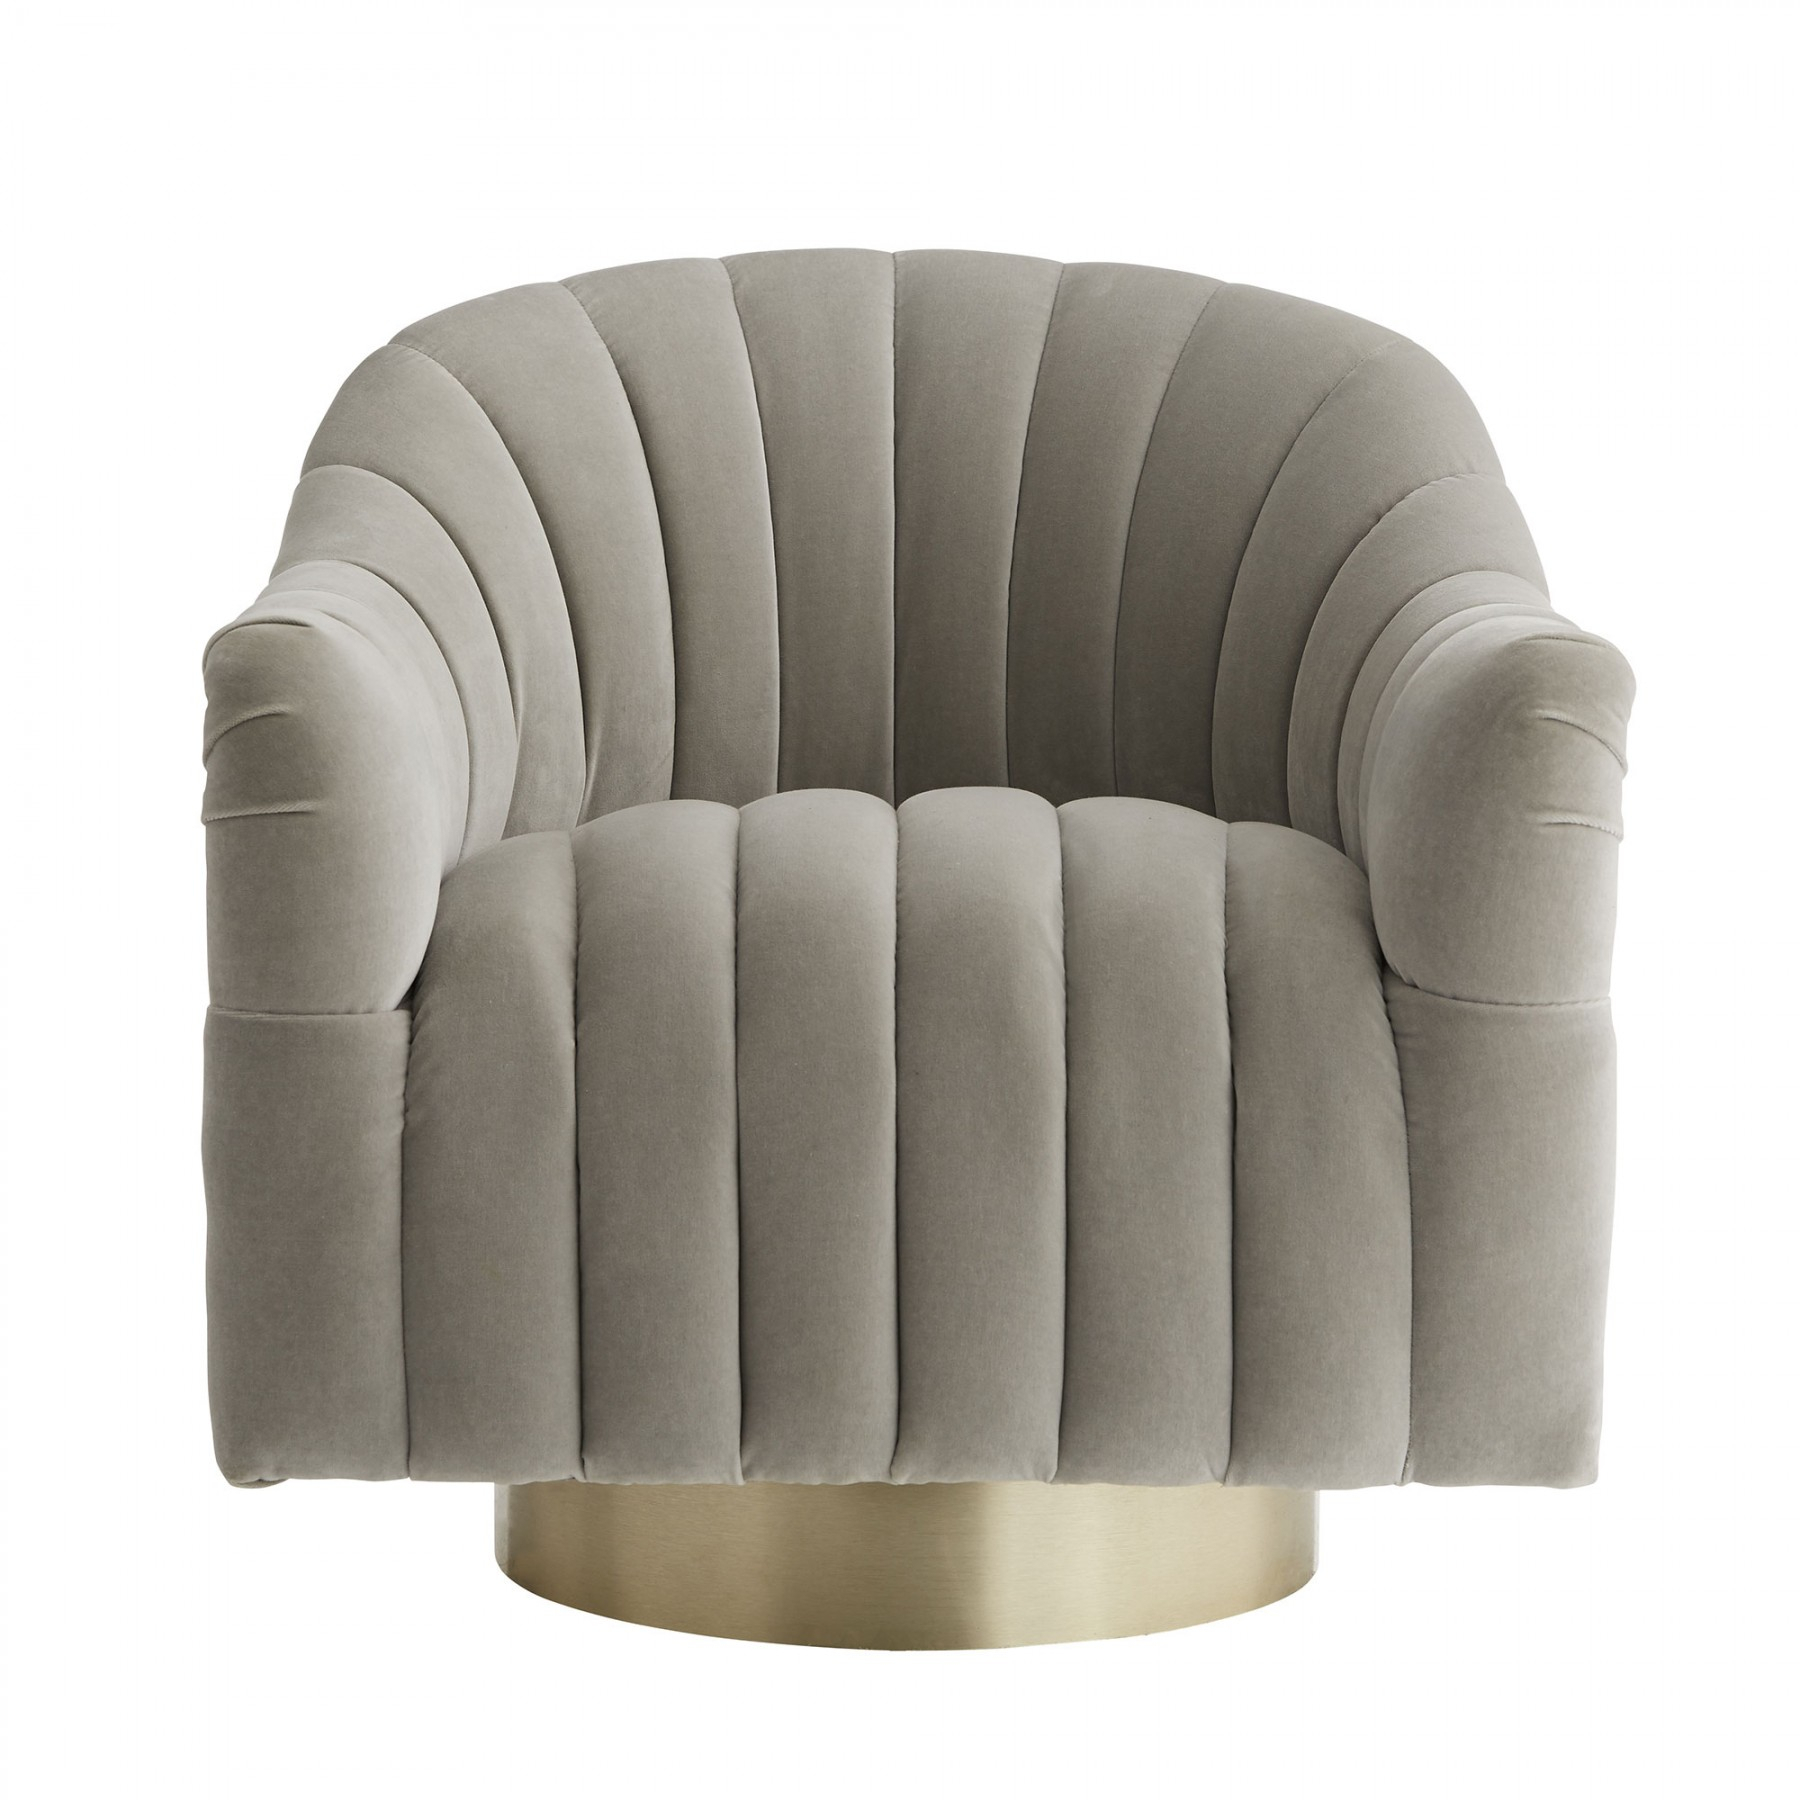 Springsteen Chair Flint Velvet Champagne Swivel With Regard To Harbor Grey Swivel Accent Chairs (Image 23 of 25)